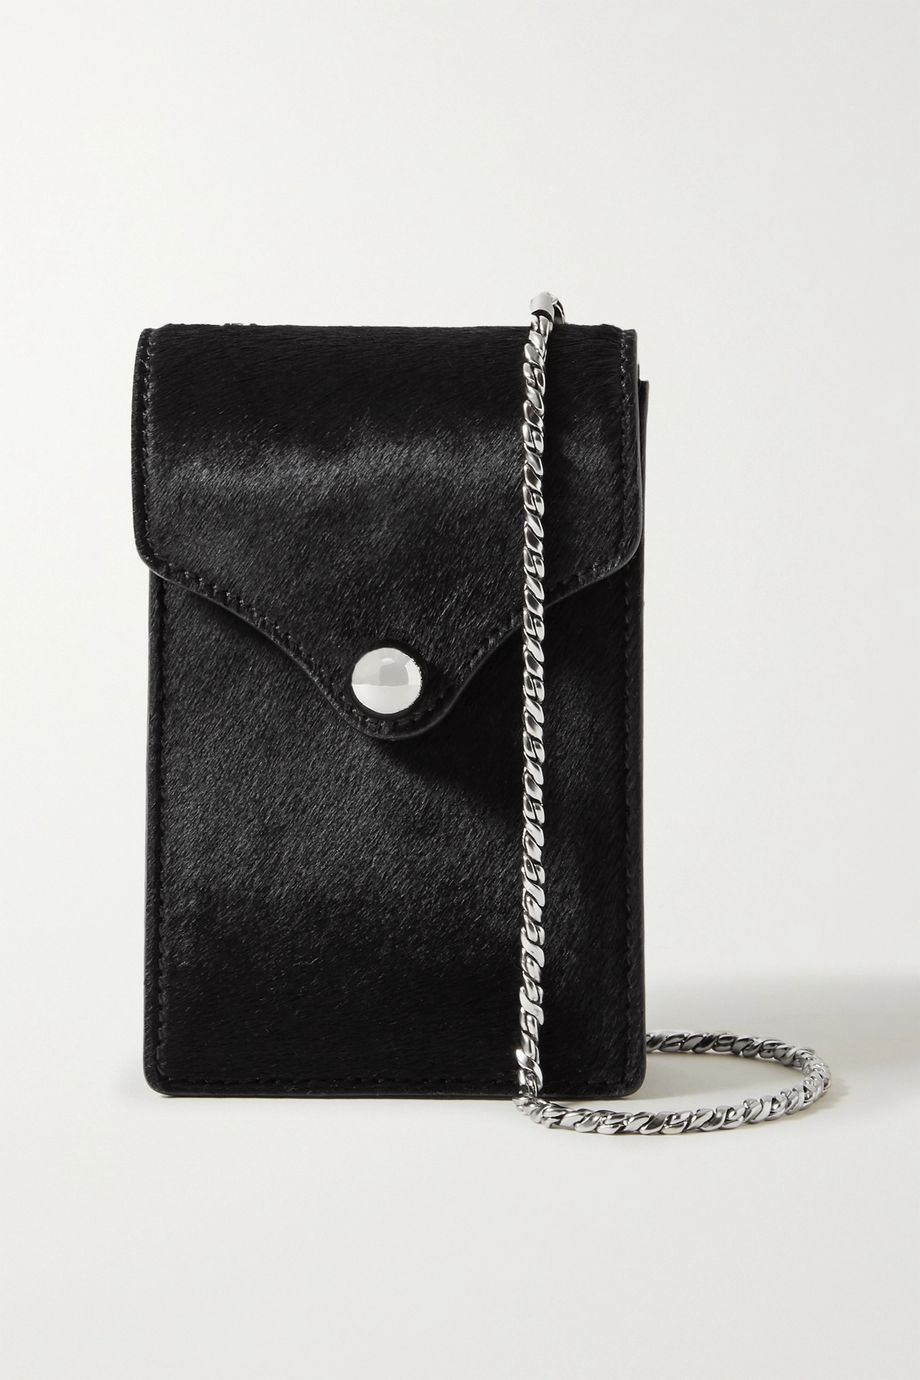 Ratio et Motus Disco mini calf hair shoulder bag